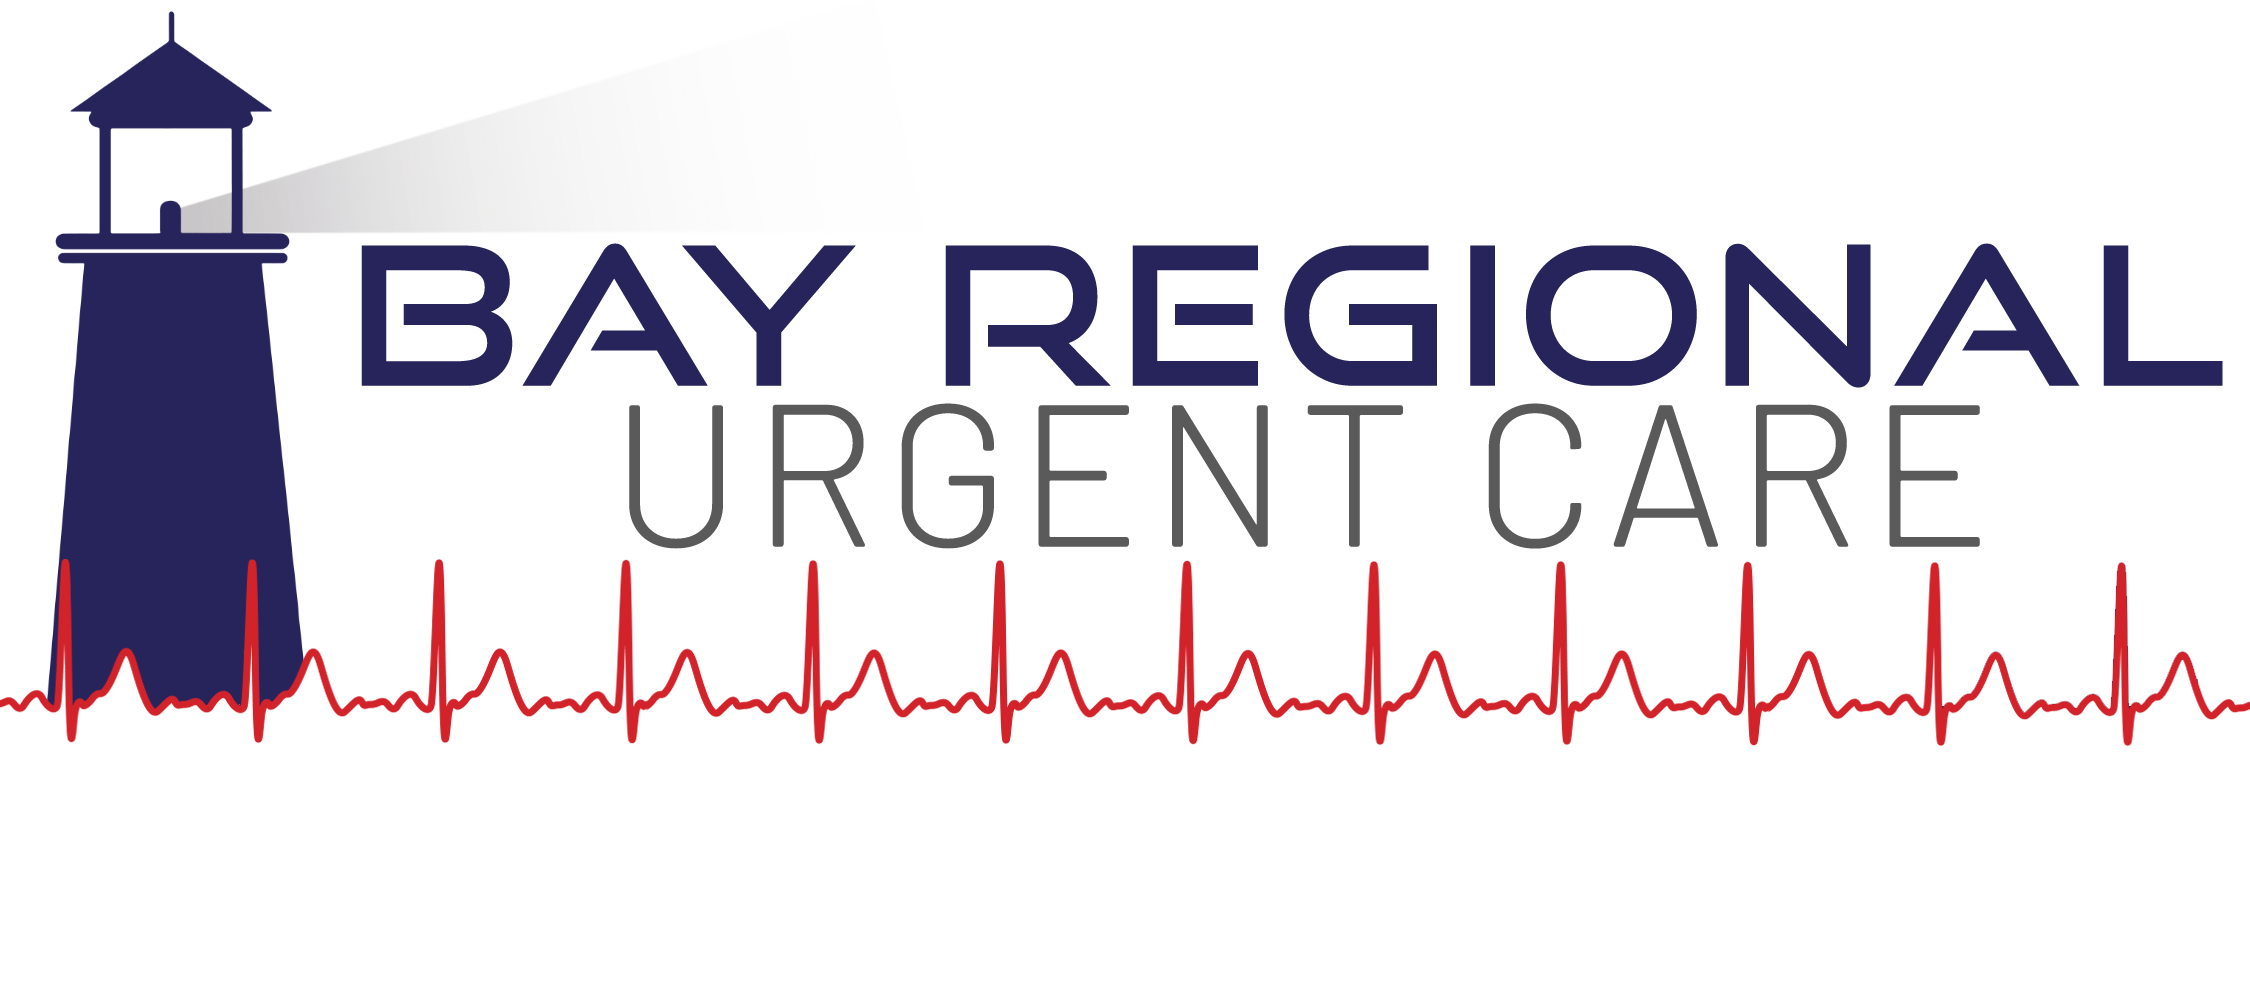 Bay Regional Urgent Care | Primary Doctor | Palm Harbor Florida